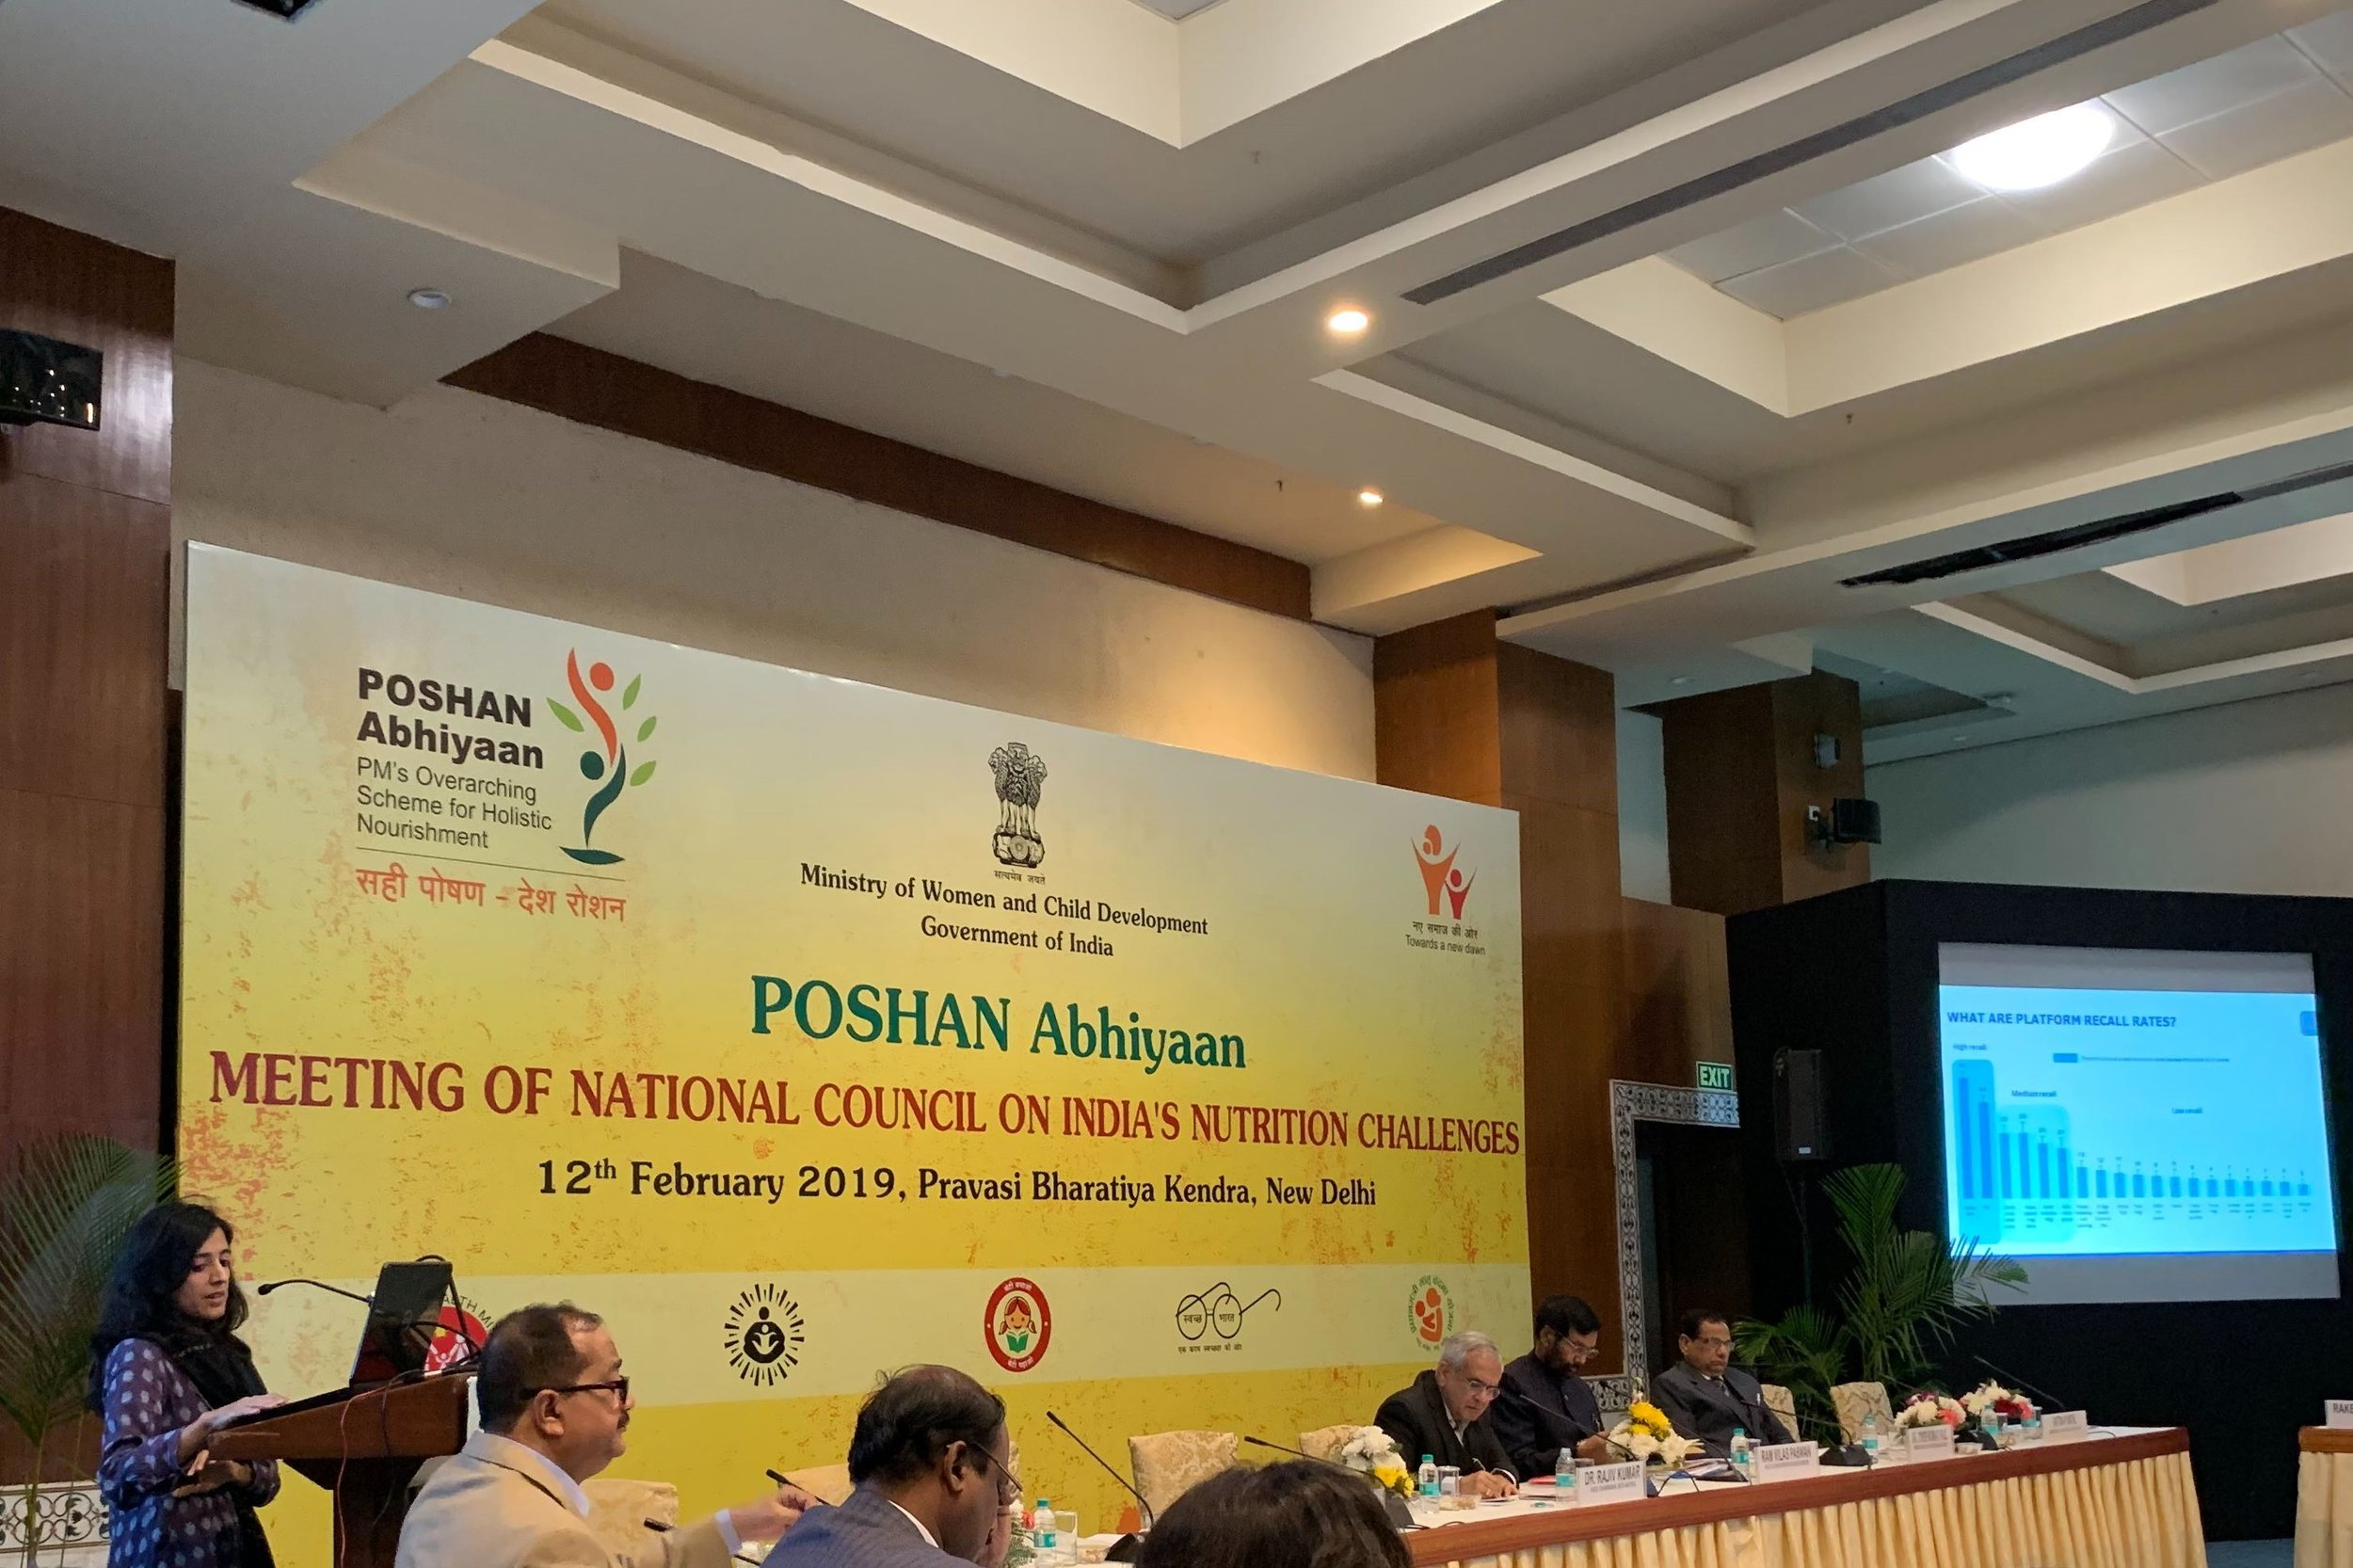 IDinsight's Divya Nair presents our findings on Poshan Abhiyaan's Social and Behavior Change Communication at the National Council on India's Nutrition Challenges.